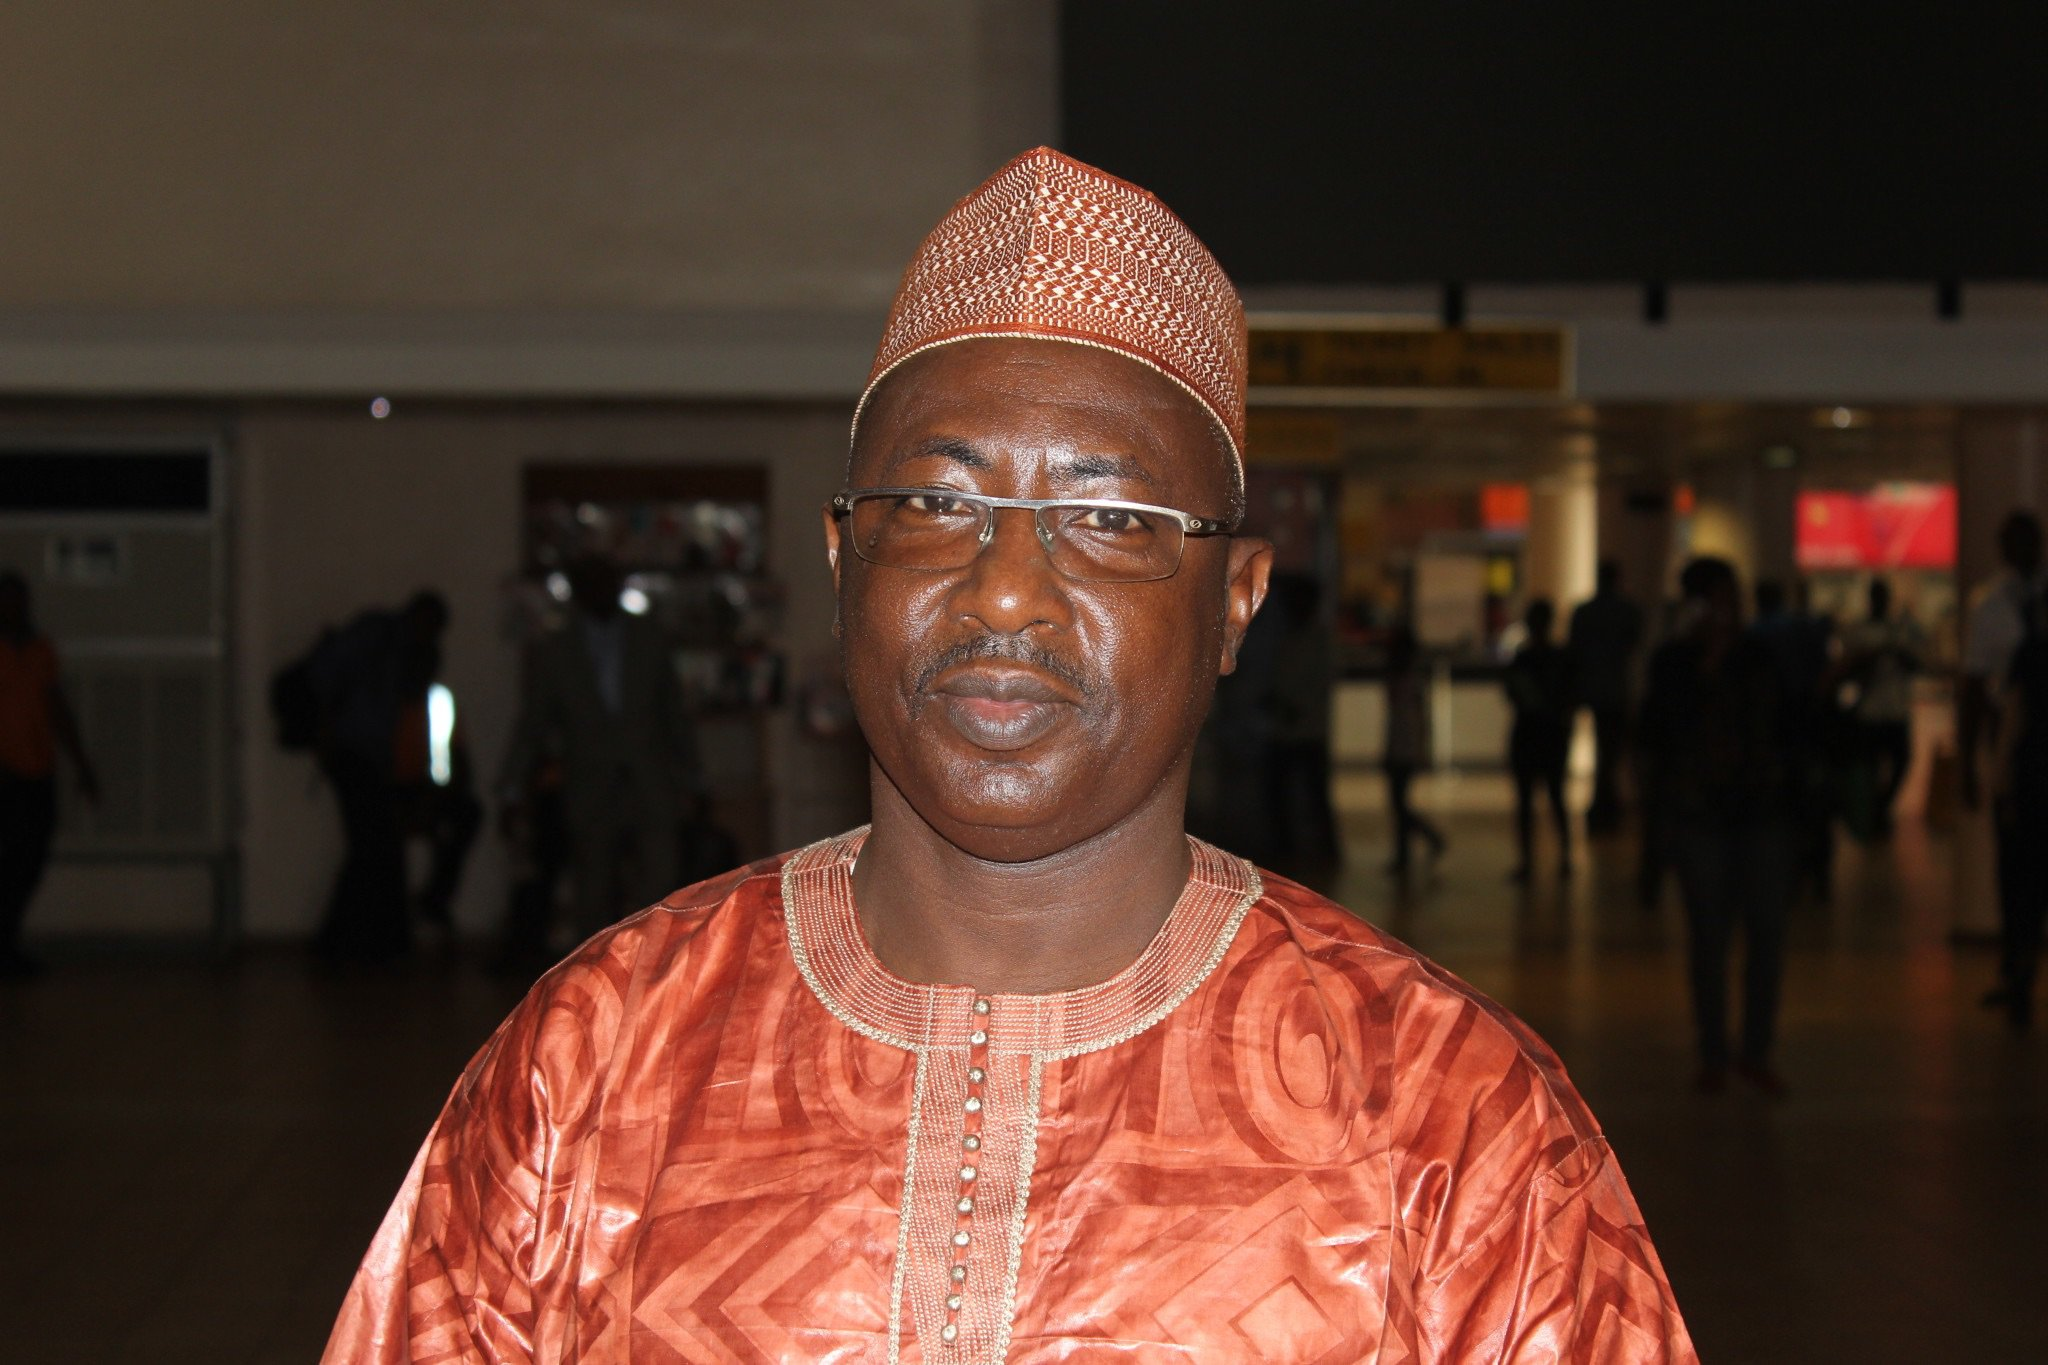 Mohammed Sanusi lauds the new CAF leadership